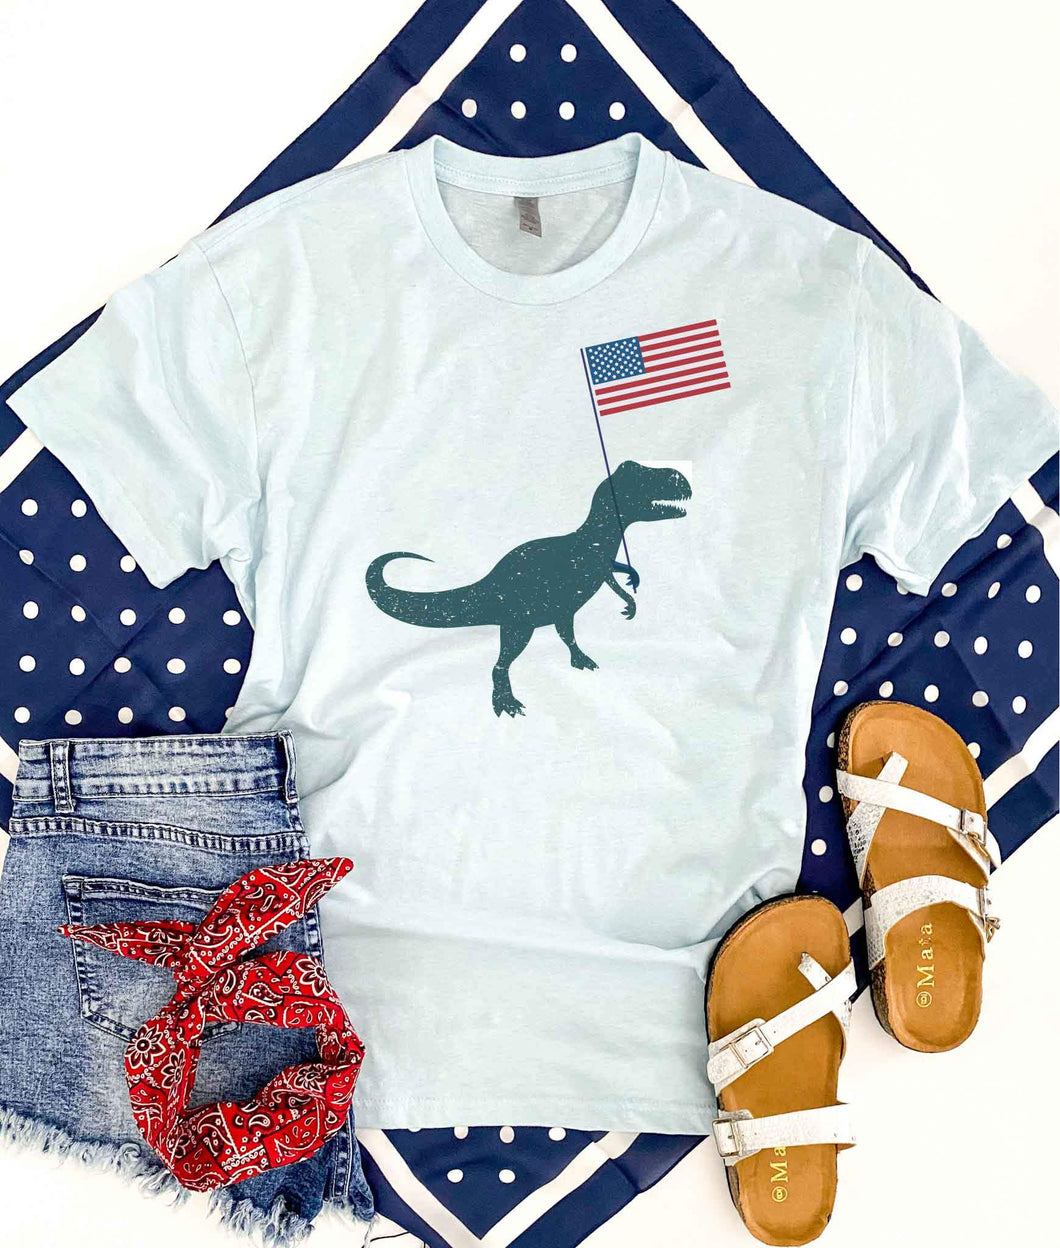 Patriotic t-rex kids tee Short sleeve patriotic kids tee Bella canvas 3001y